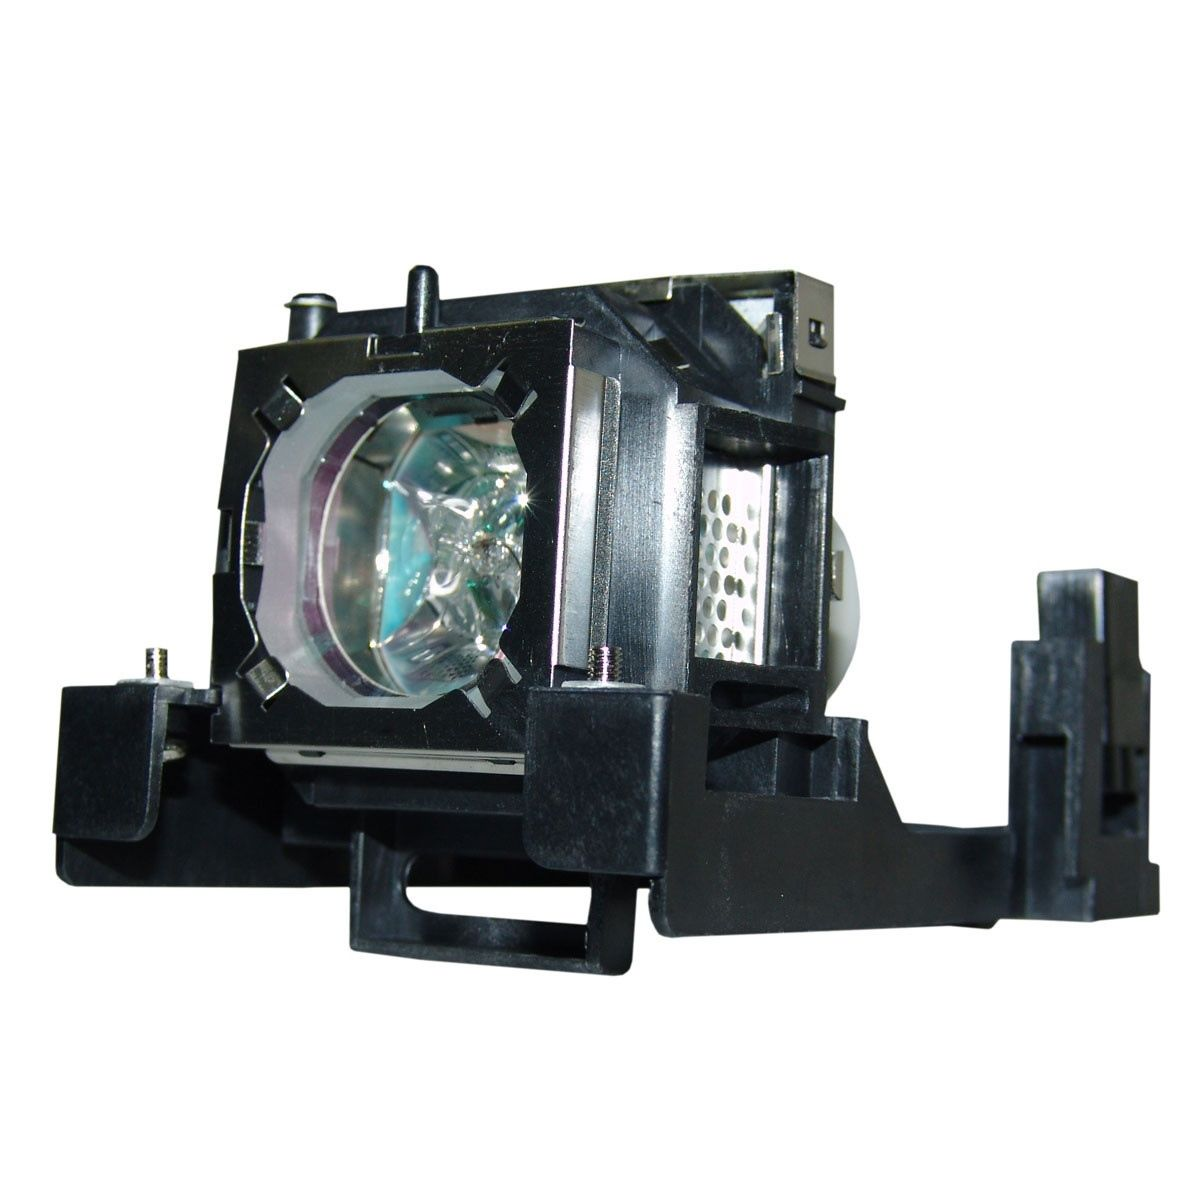 projector Lamp Bulb ET-LAT100 ETLAT100 LAT100 for Panasonic PT-TW230 PT-TW231R PT-TW230EA PT-TW231REA with housing high quality et lal320 projector bulb with original lamp for panasonic pt lx270u pt lx300 pt lx300u projector